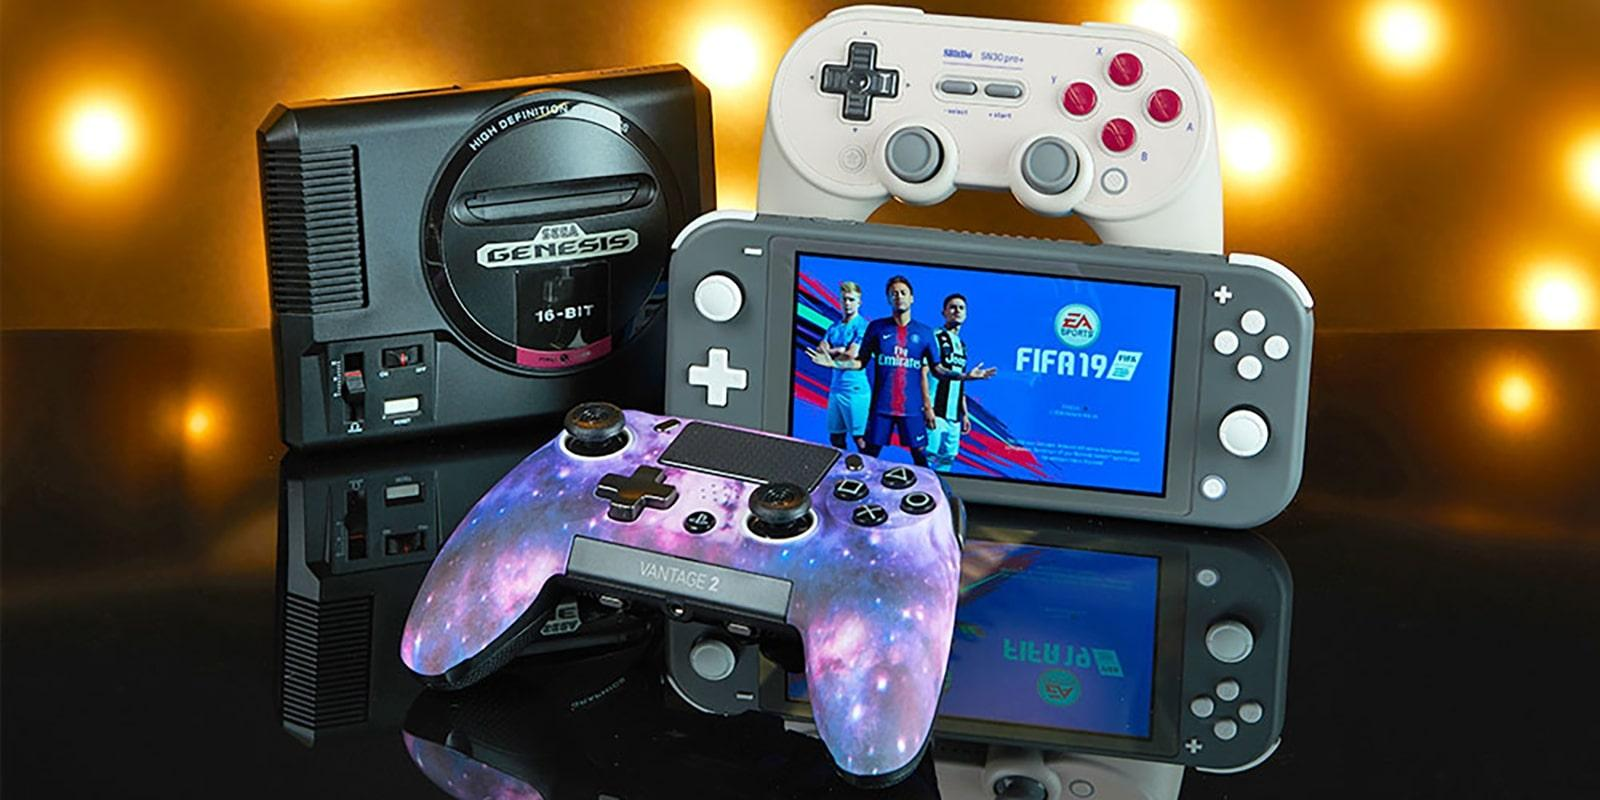 The best gaming gifts of 2019